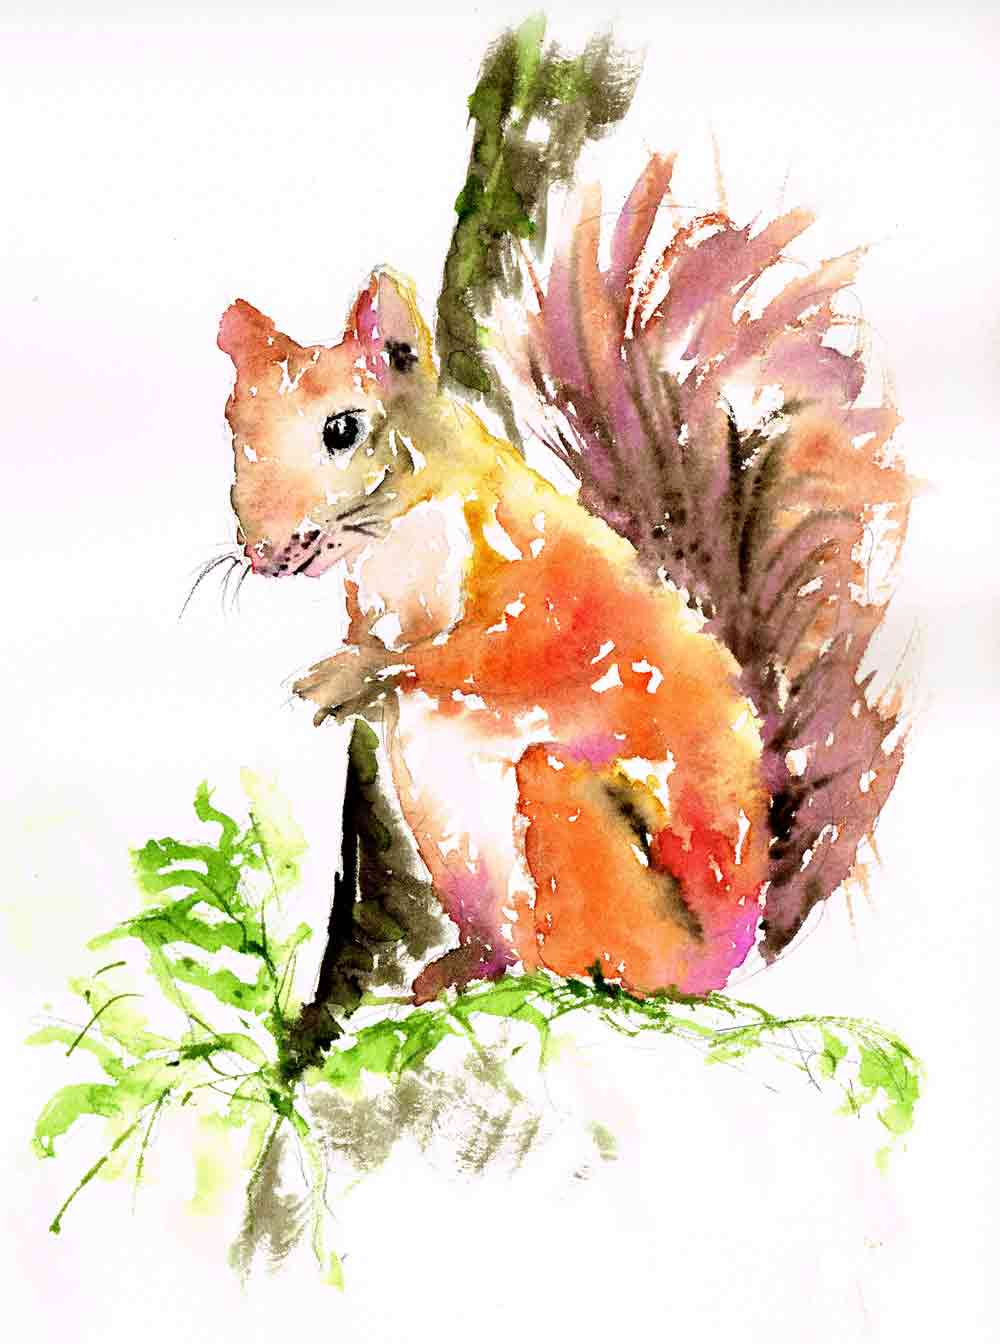 Little-critters-no-9-squirrel-in-a-tree-kw.jpg